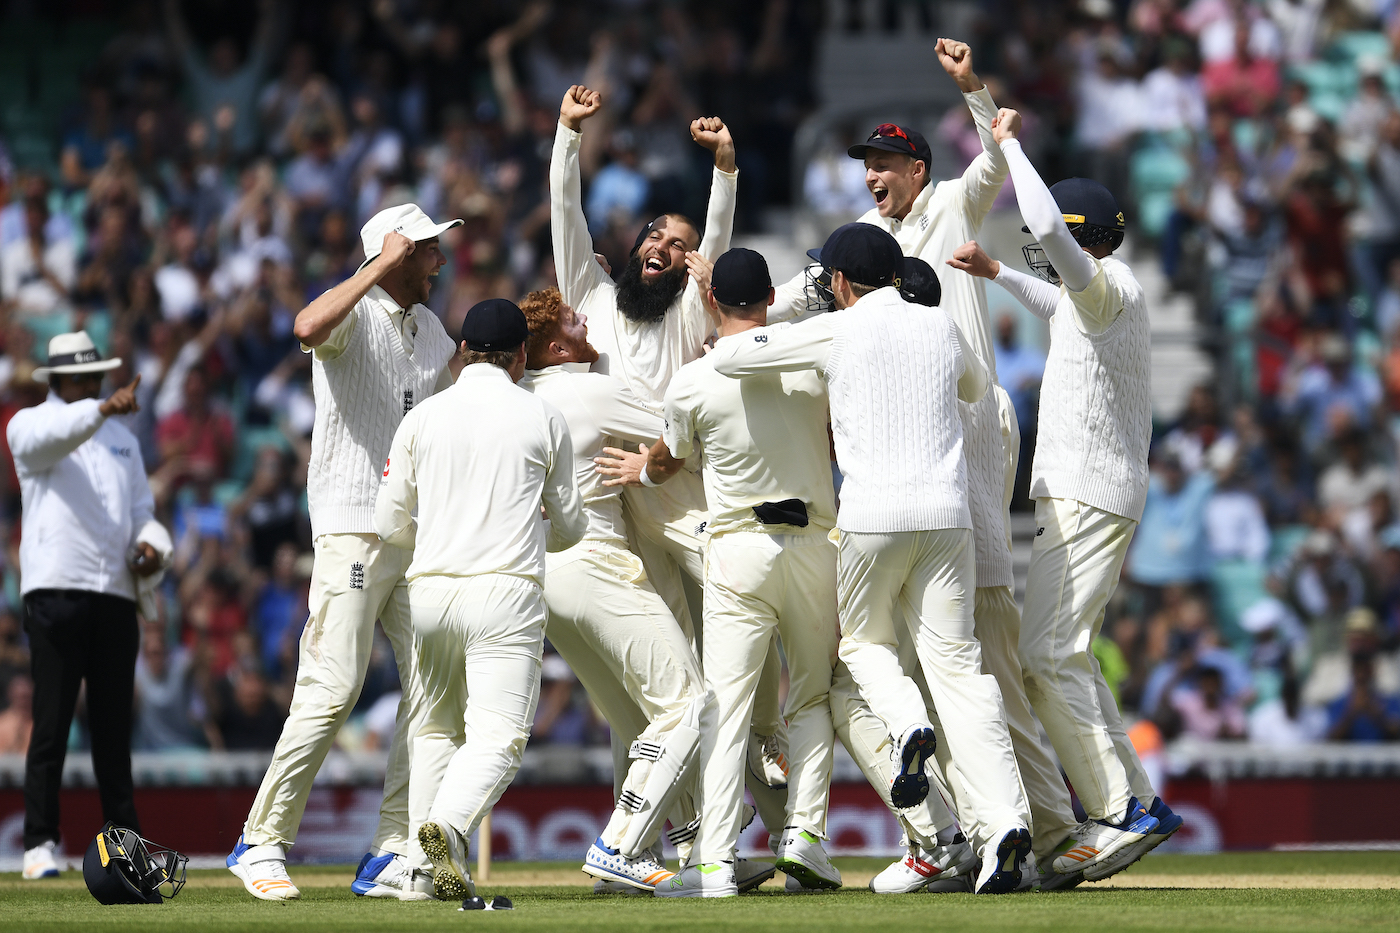 Imagine Moeen Ali celebrating his 2017 hat-trick with a round of nods from his team-mates